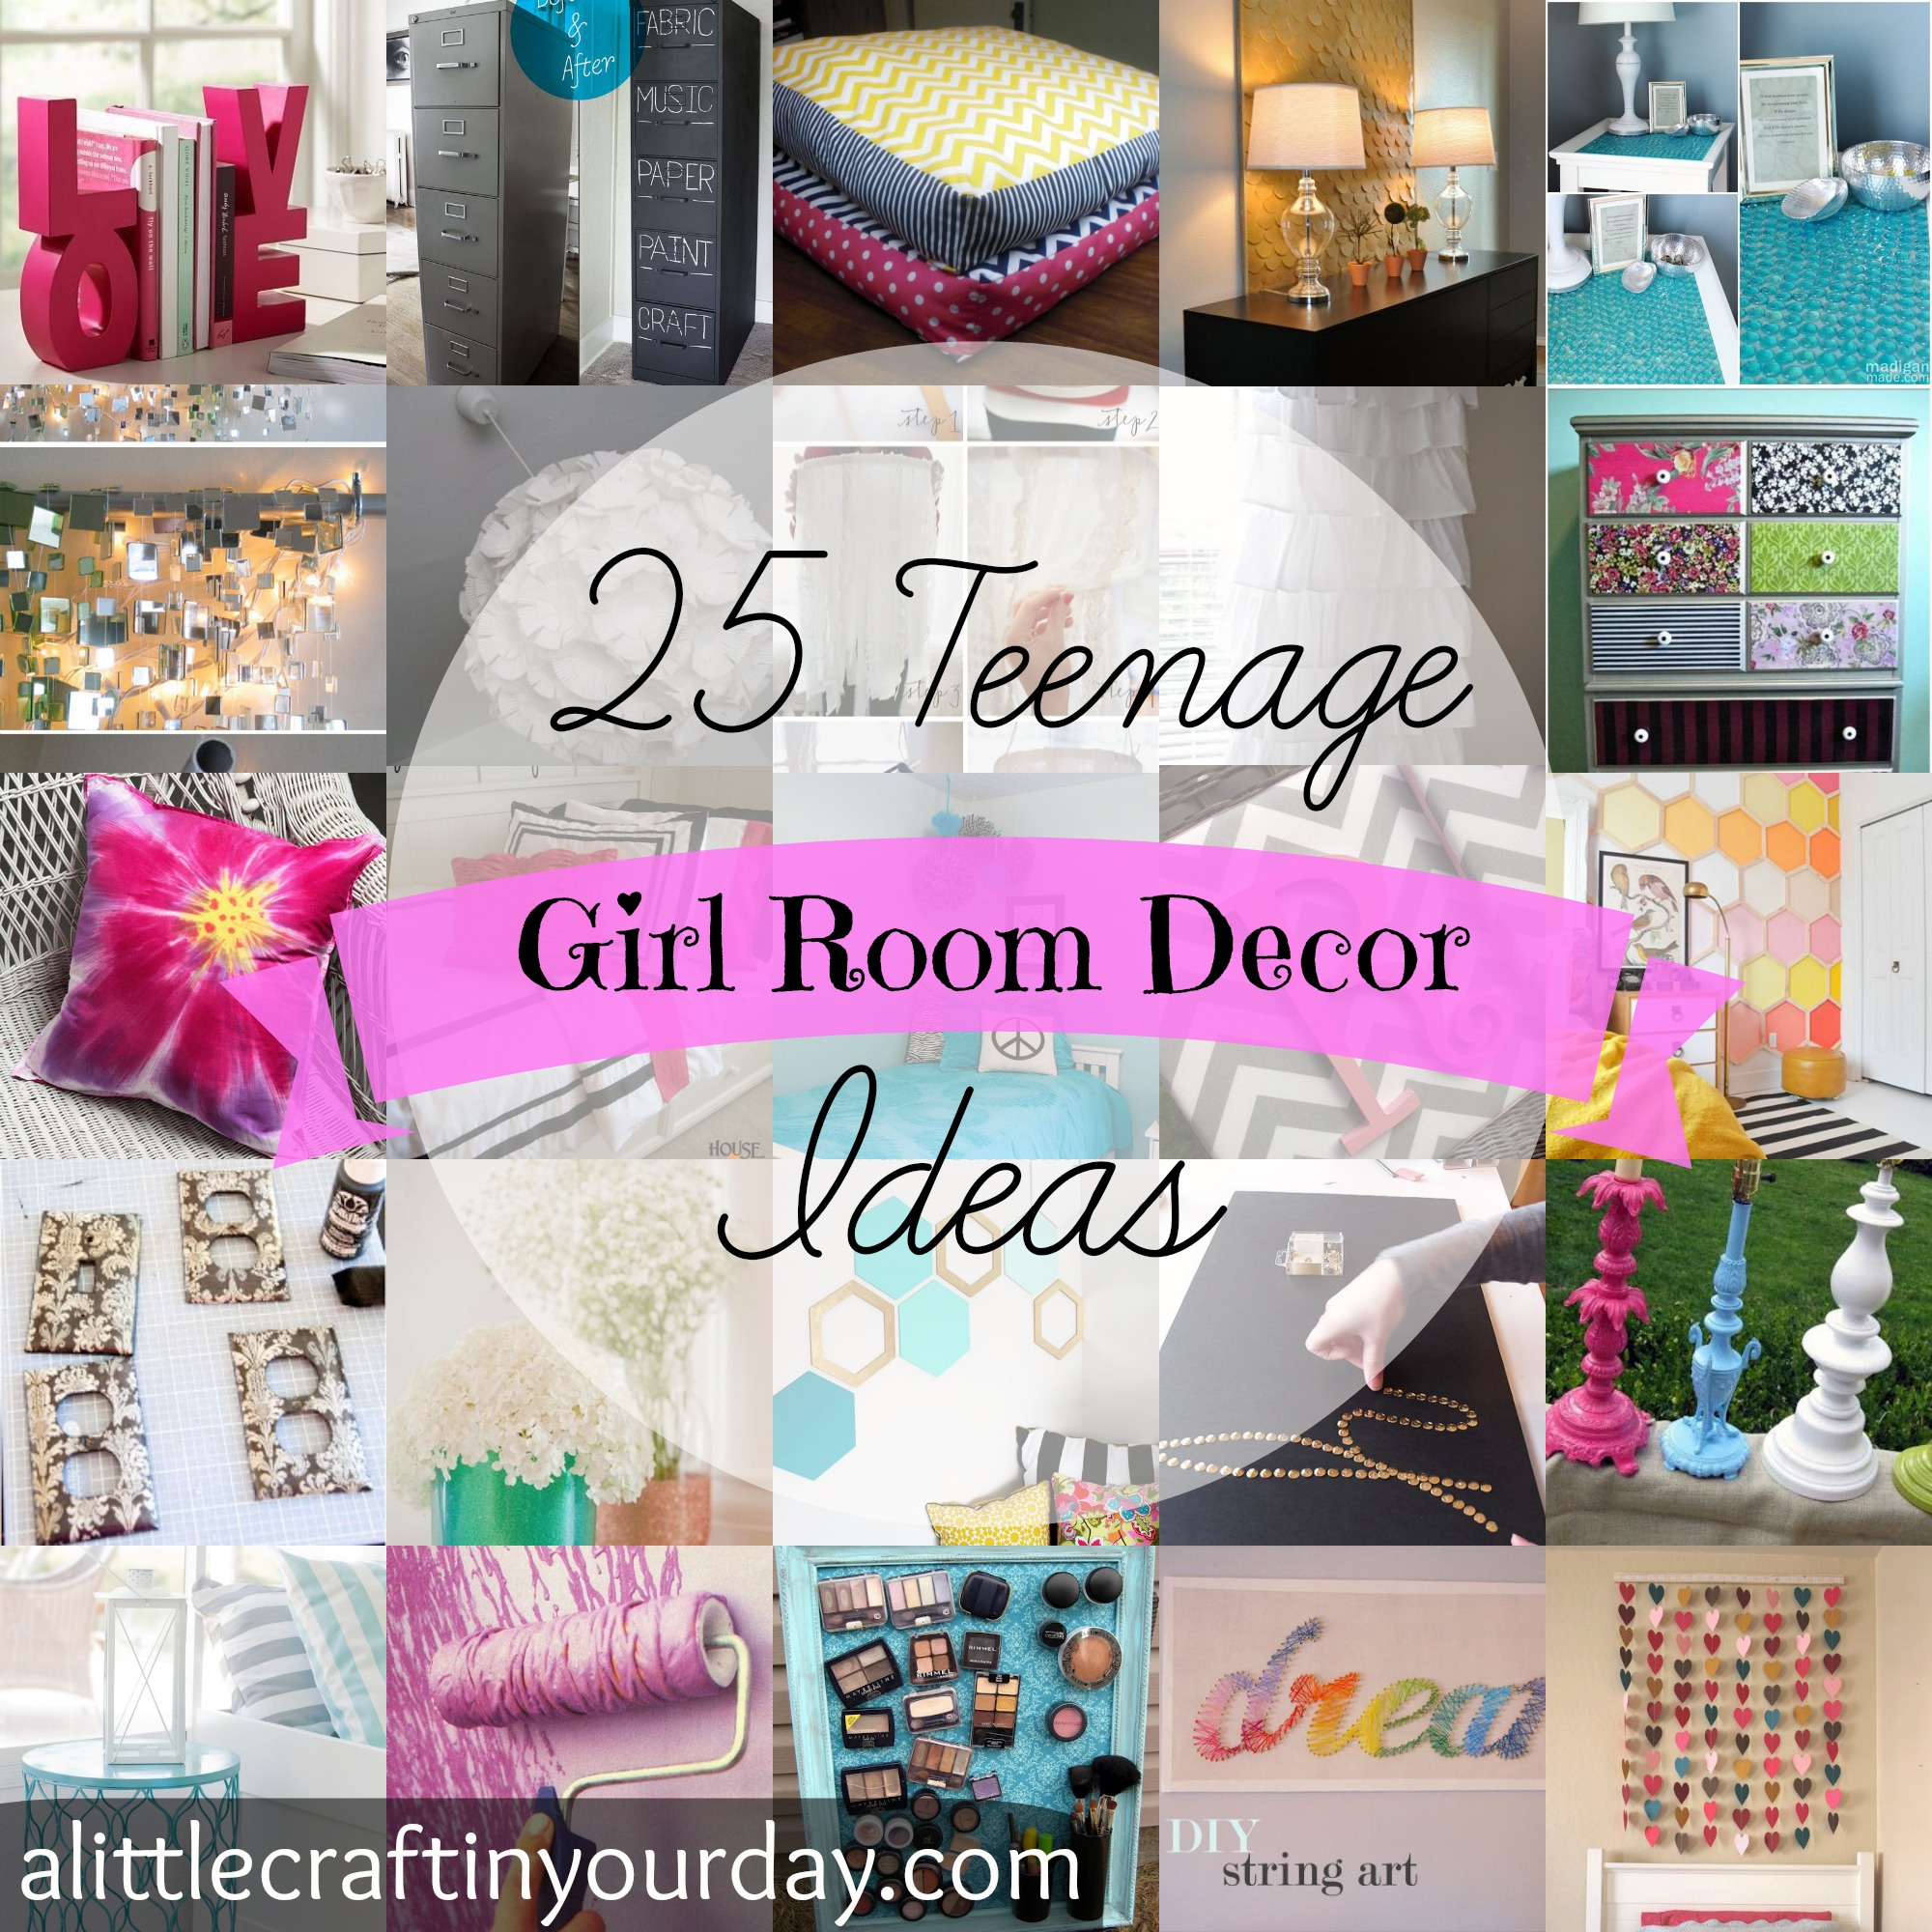 Simple Decorating Ideas To Make Your Room Look Amazing: 12 DIY Spring Room Decor Ideas